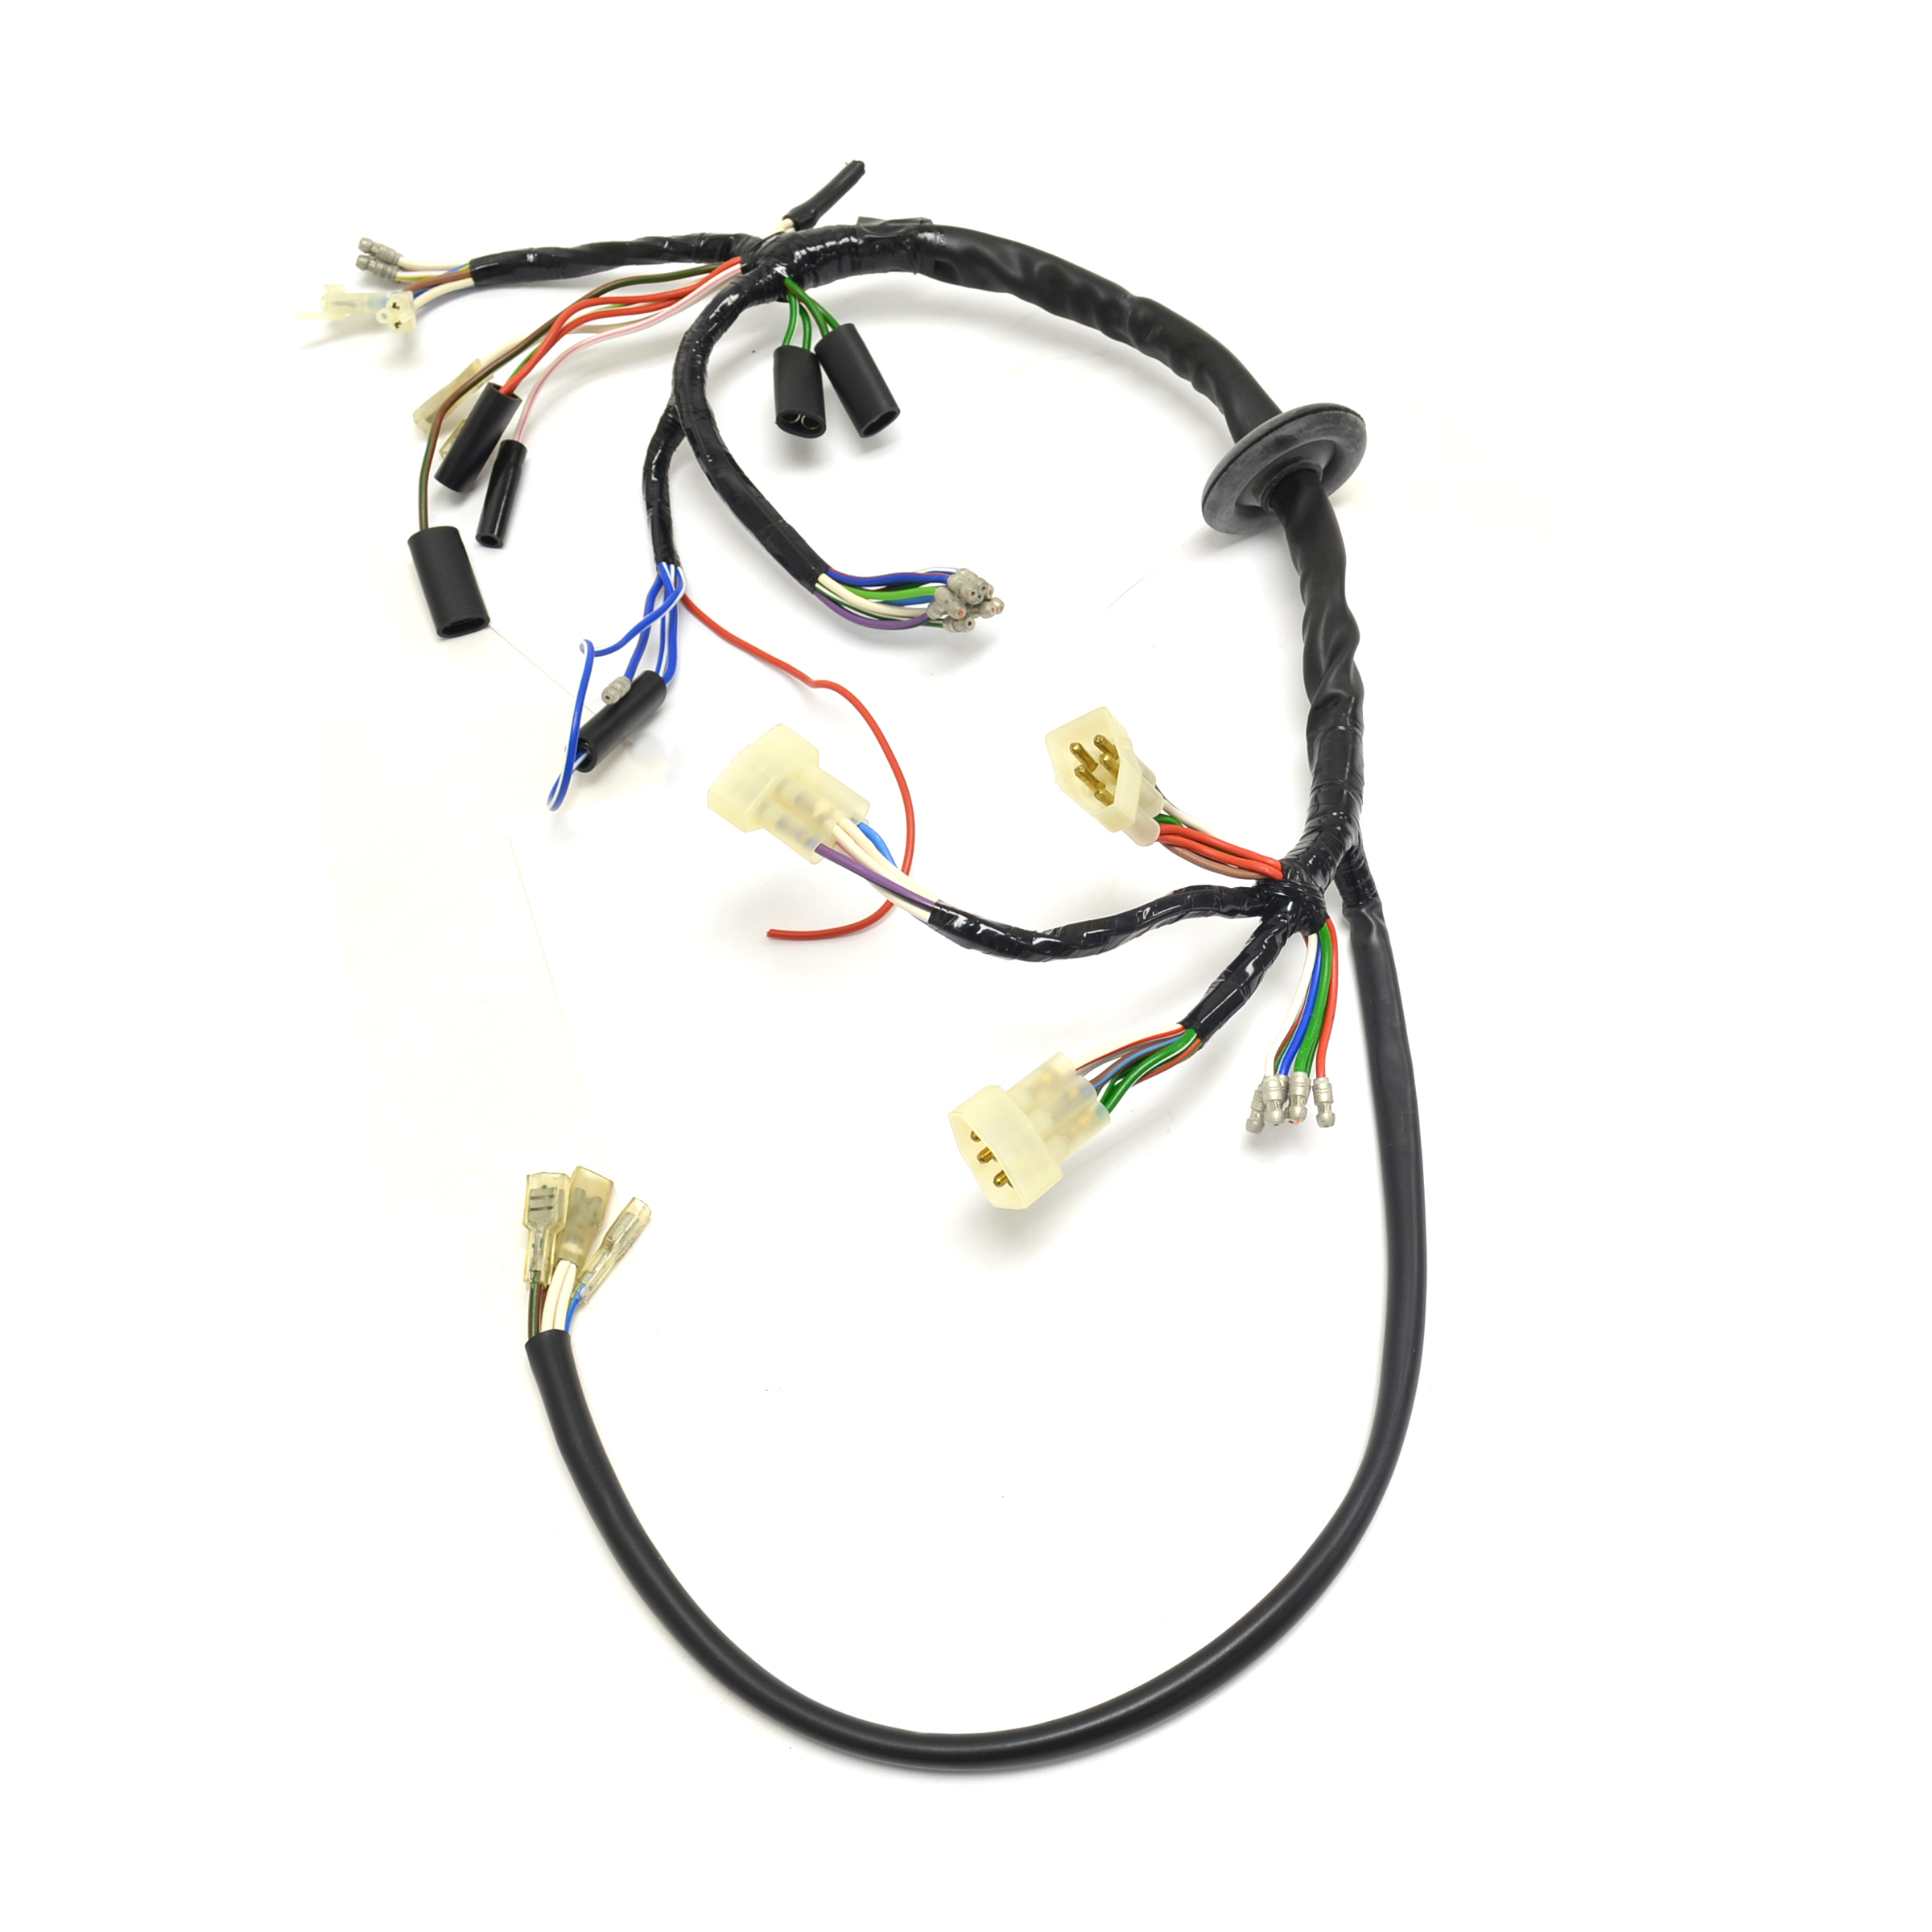 Norton Commando 77 Mkiii Headlight Wiring Harness